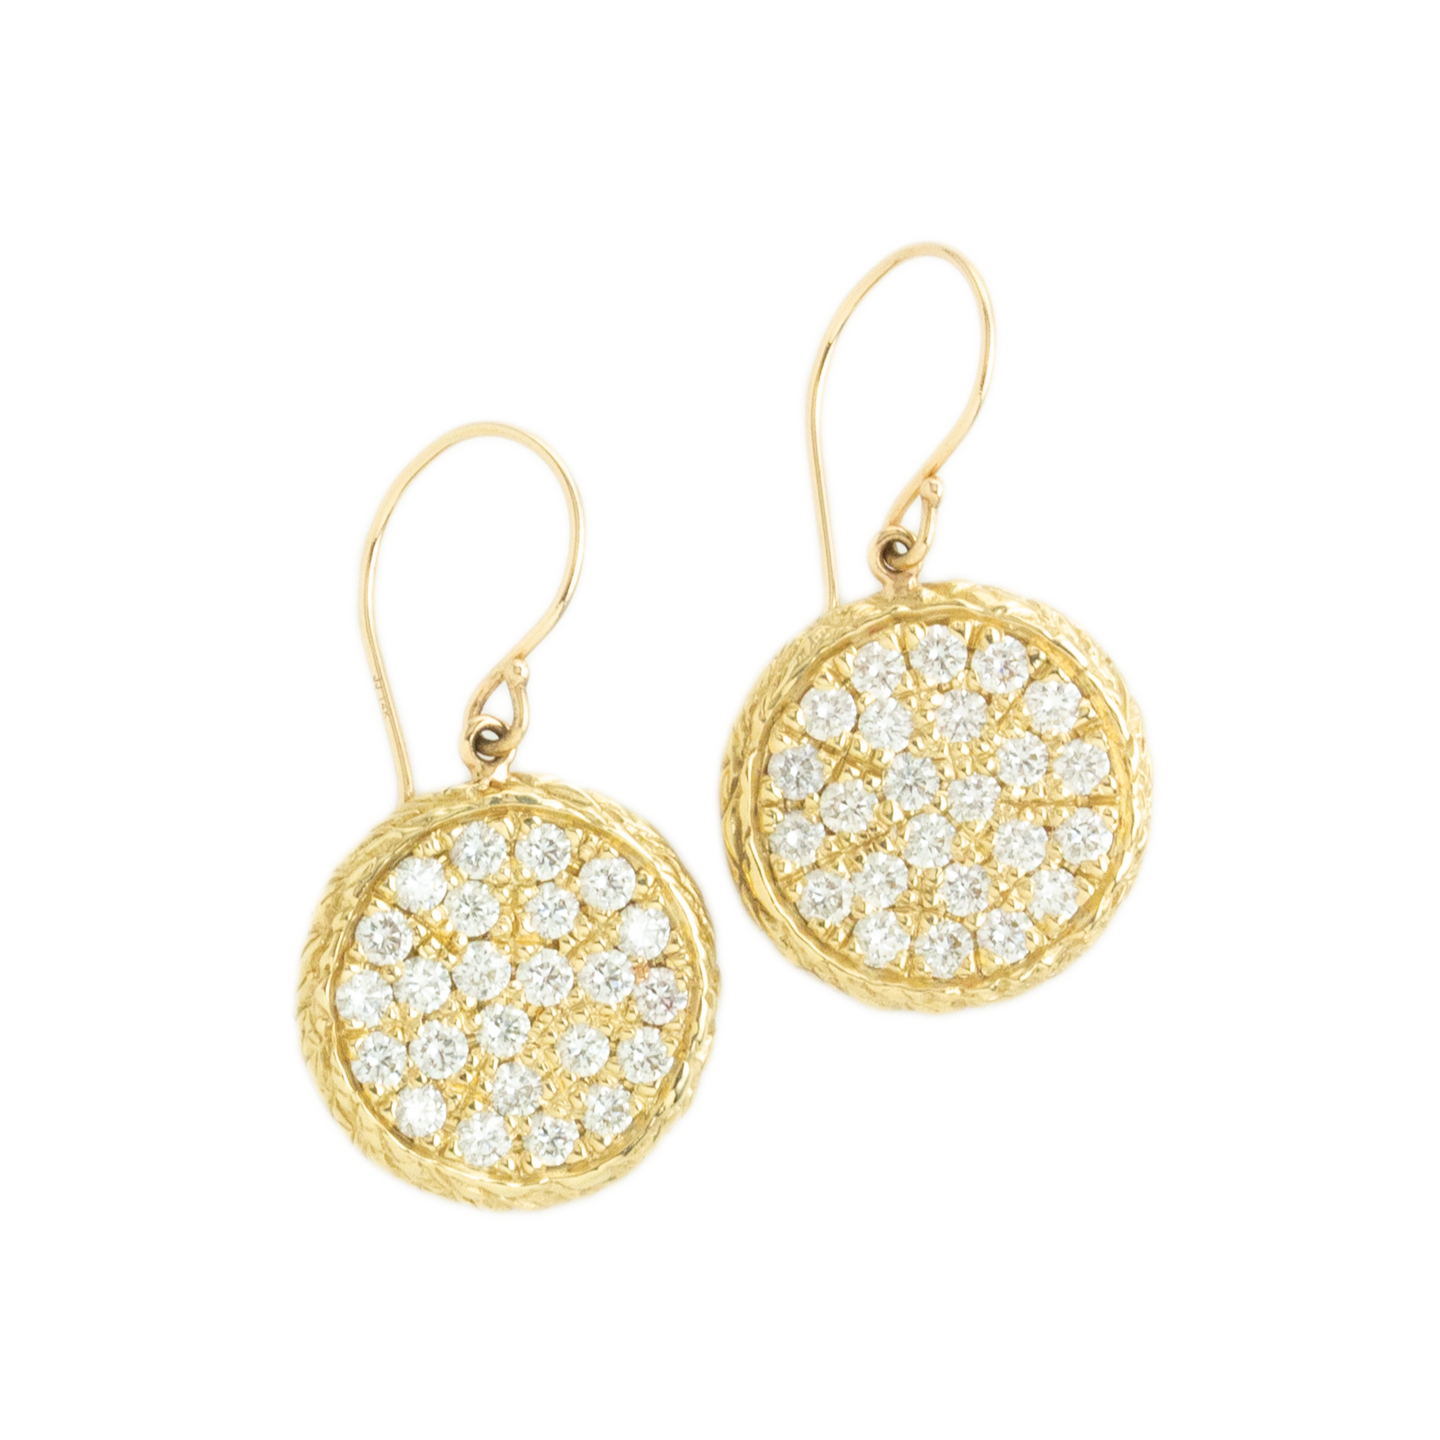 14K Gold Large Wisteria Diamond Pave Earrings